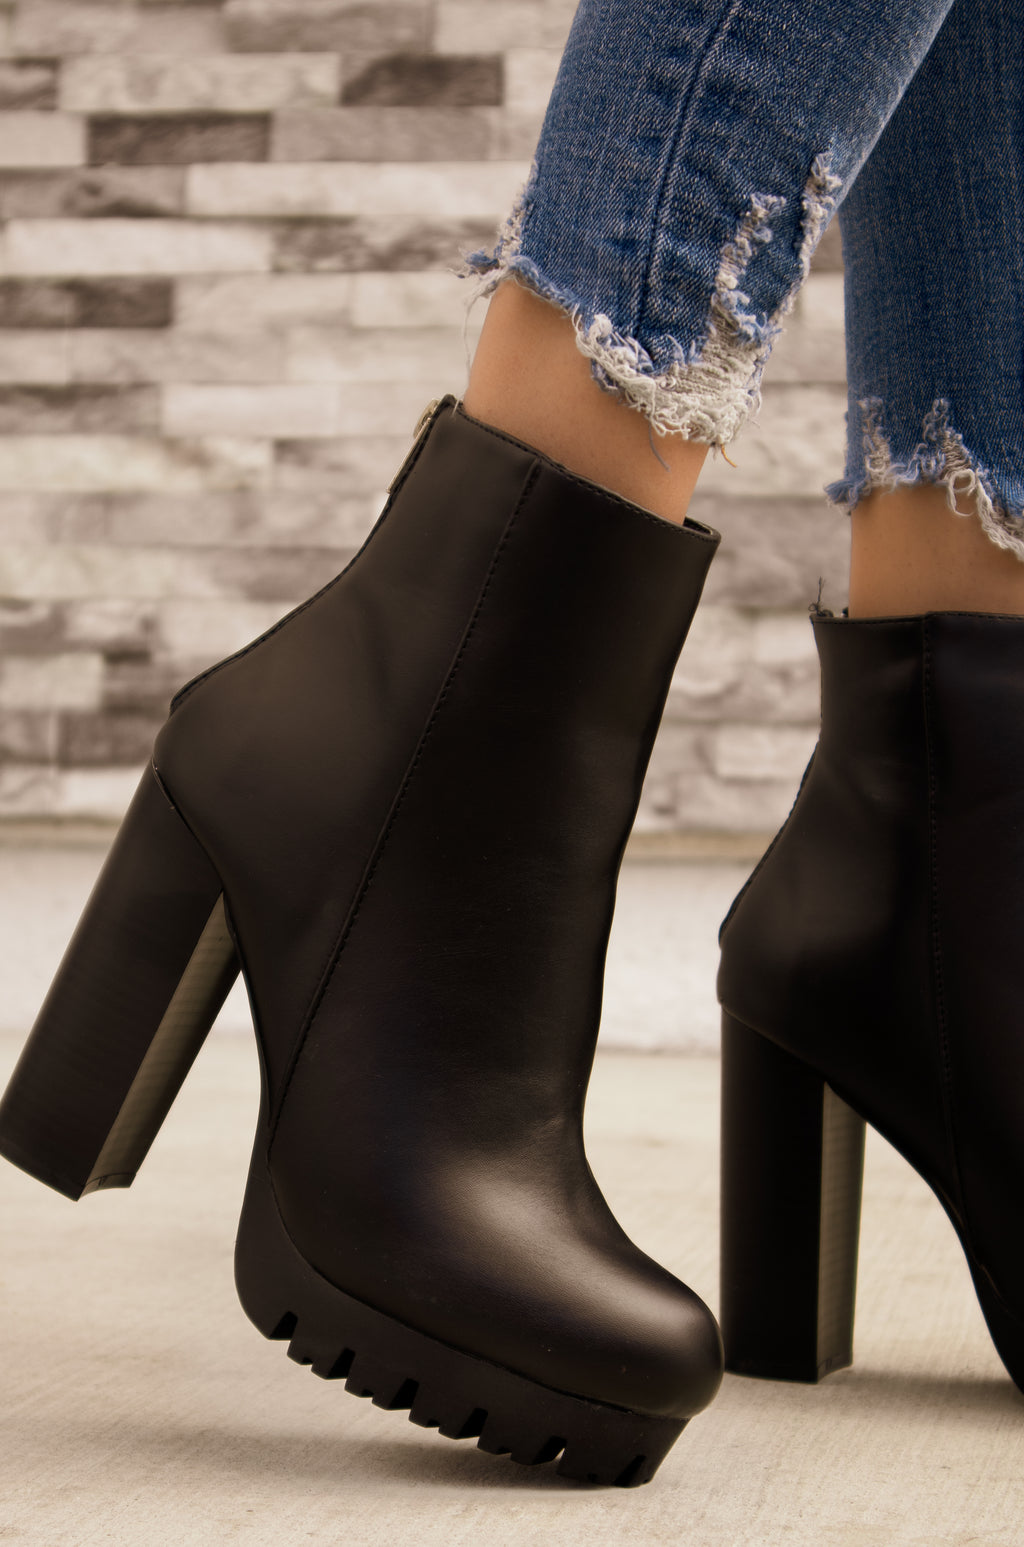 Viper - Black Lug Sole Platform Booties